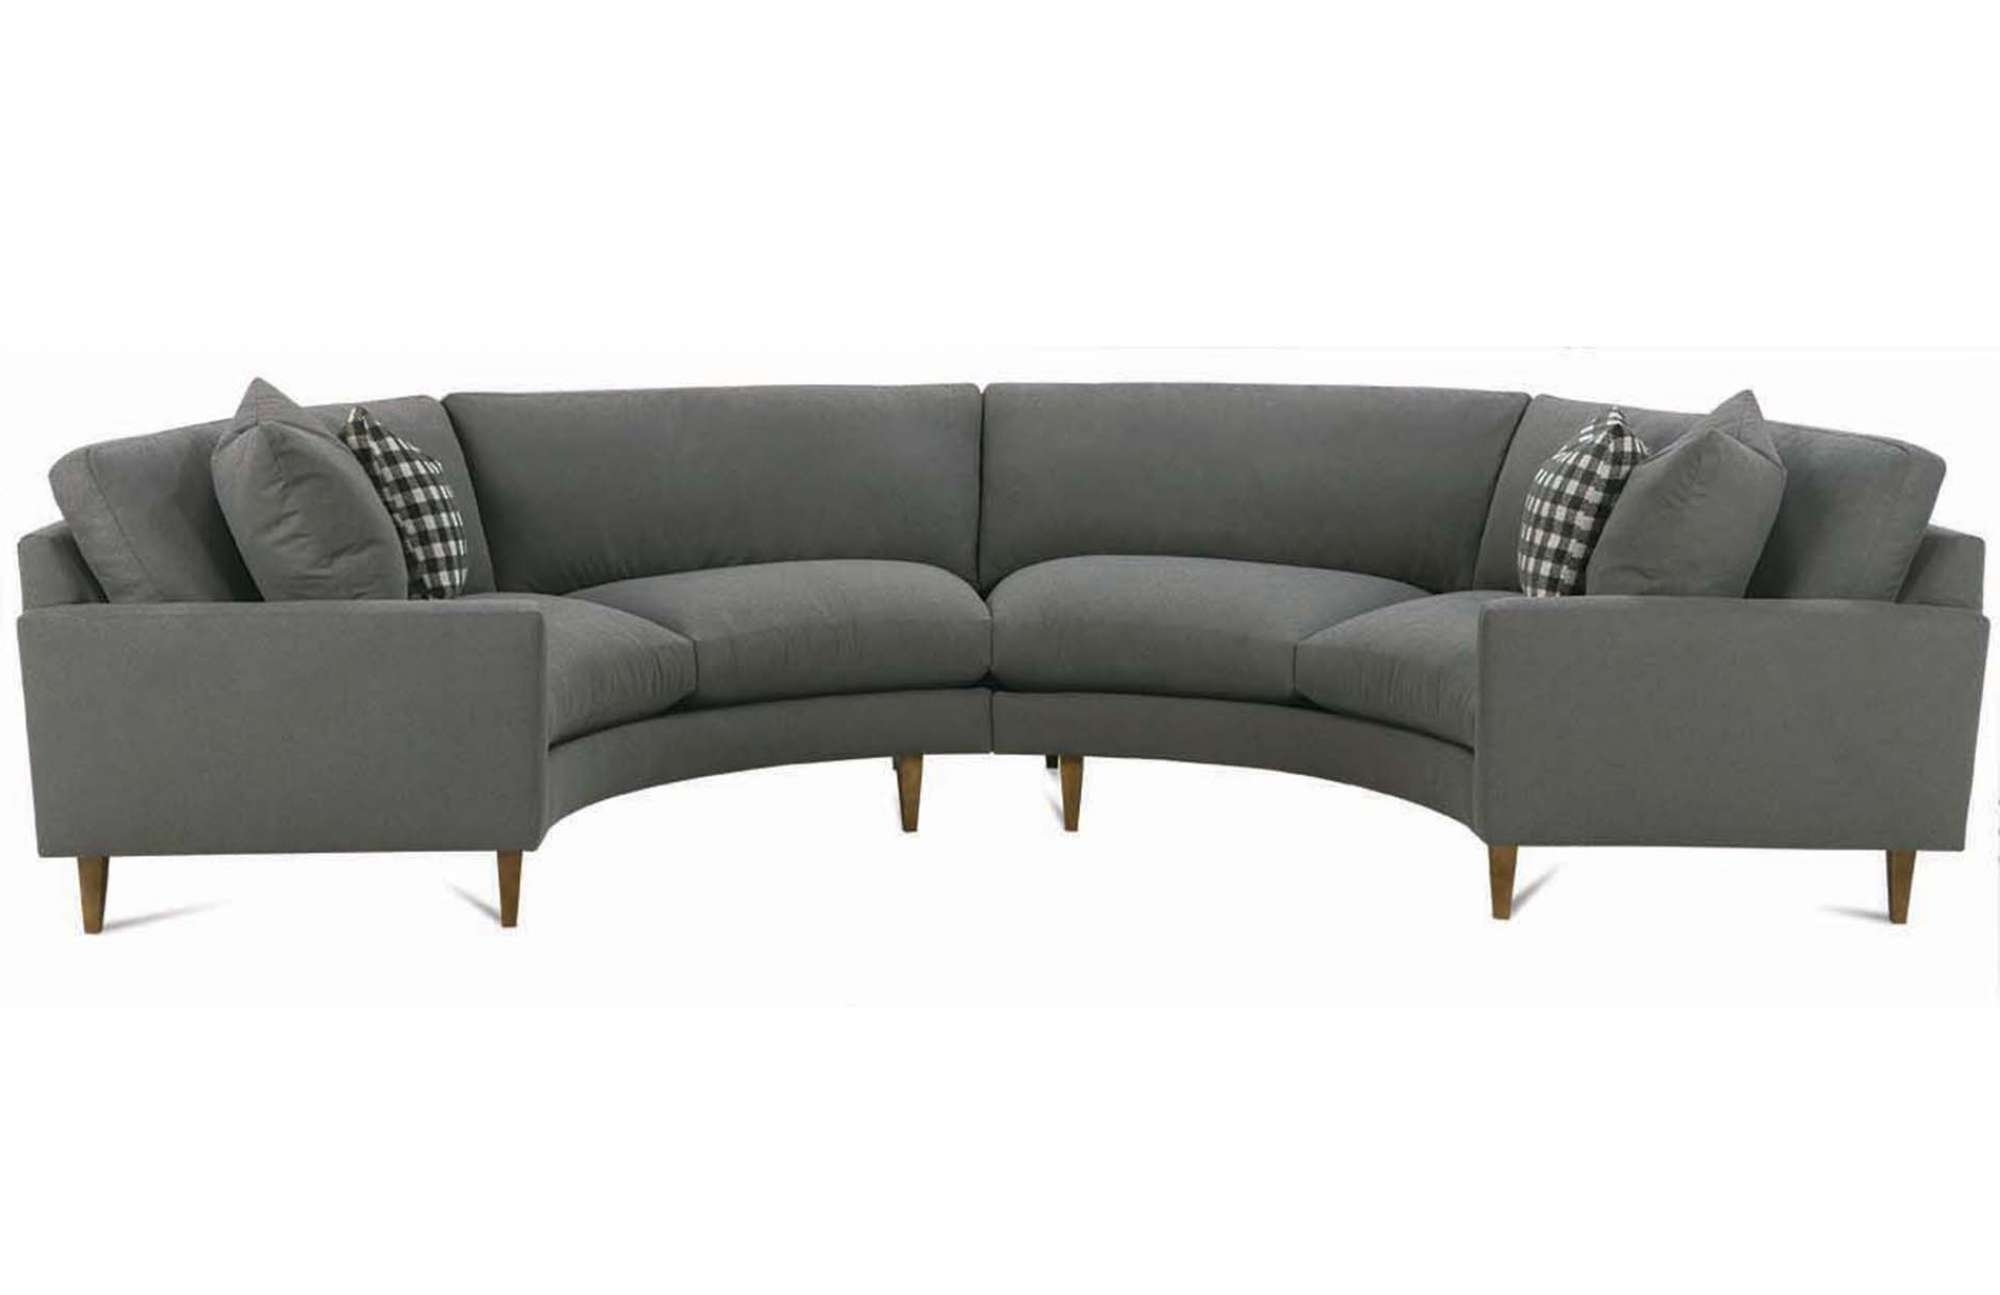 Sectional Sofas At Brampton Throughout Current Oslo Sectionalrobin Bruce (View 19 of 20)